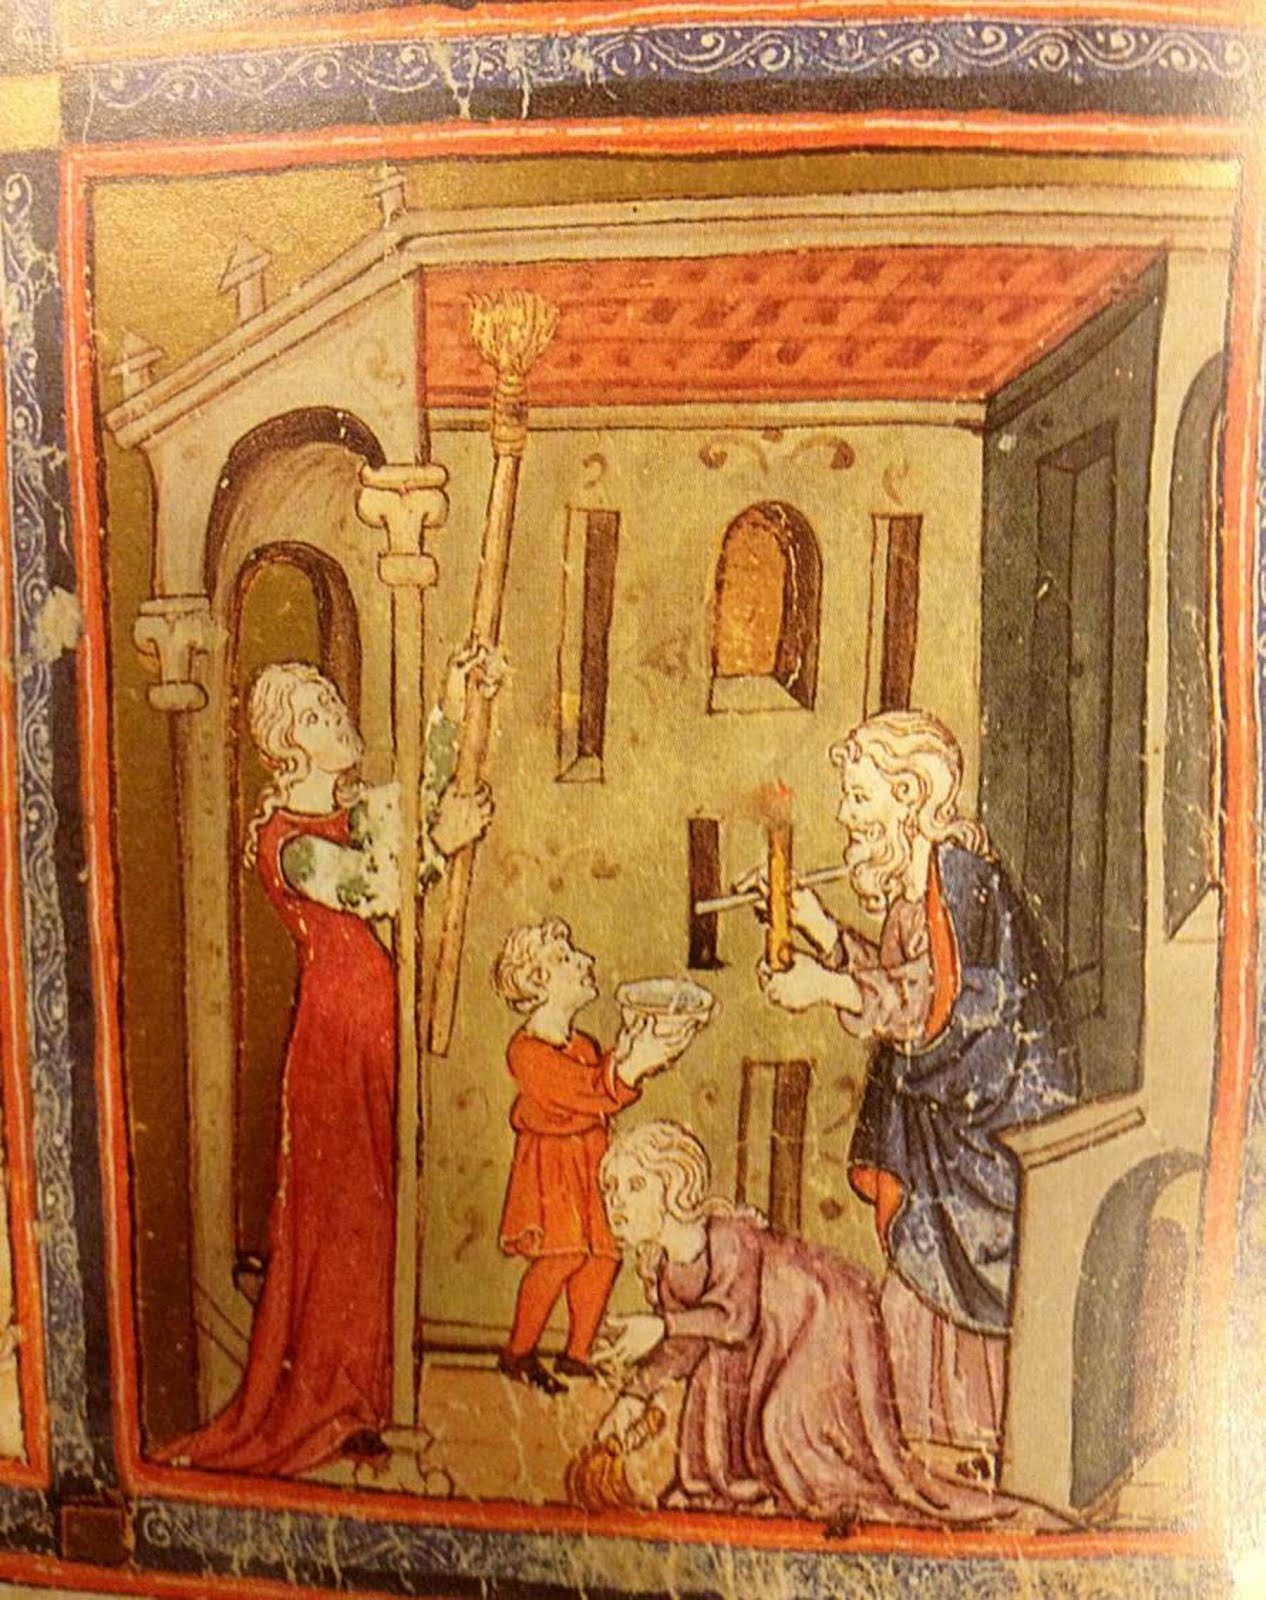 Searching for leaven, The Golden Haggadah